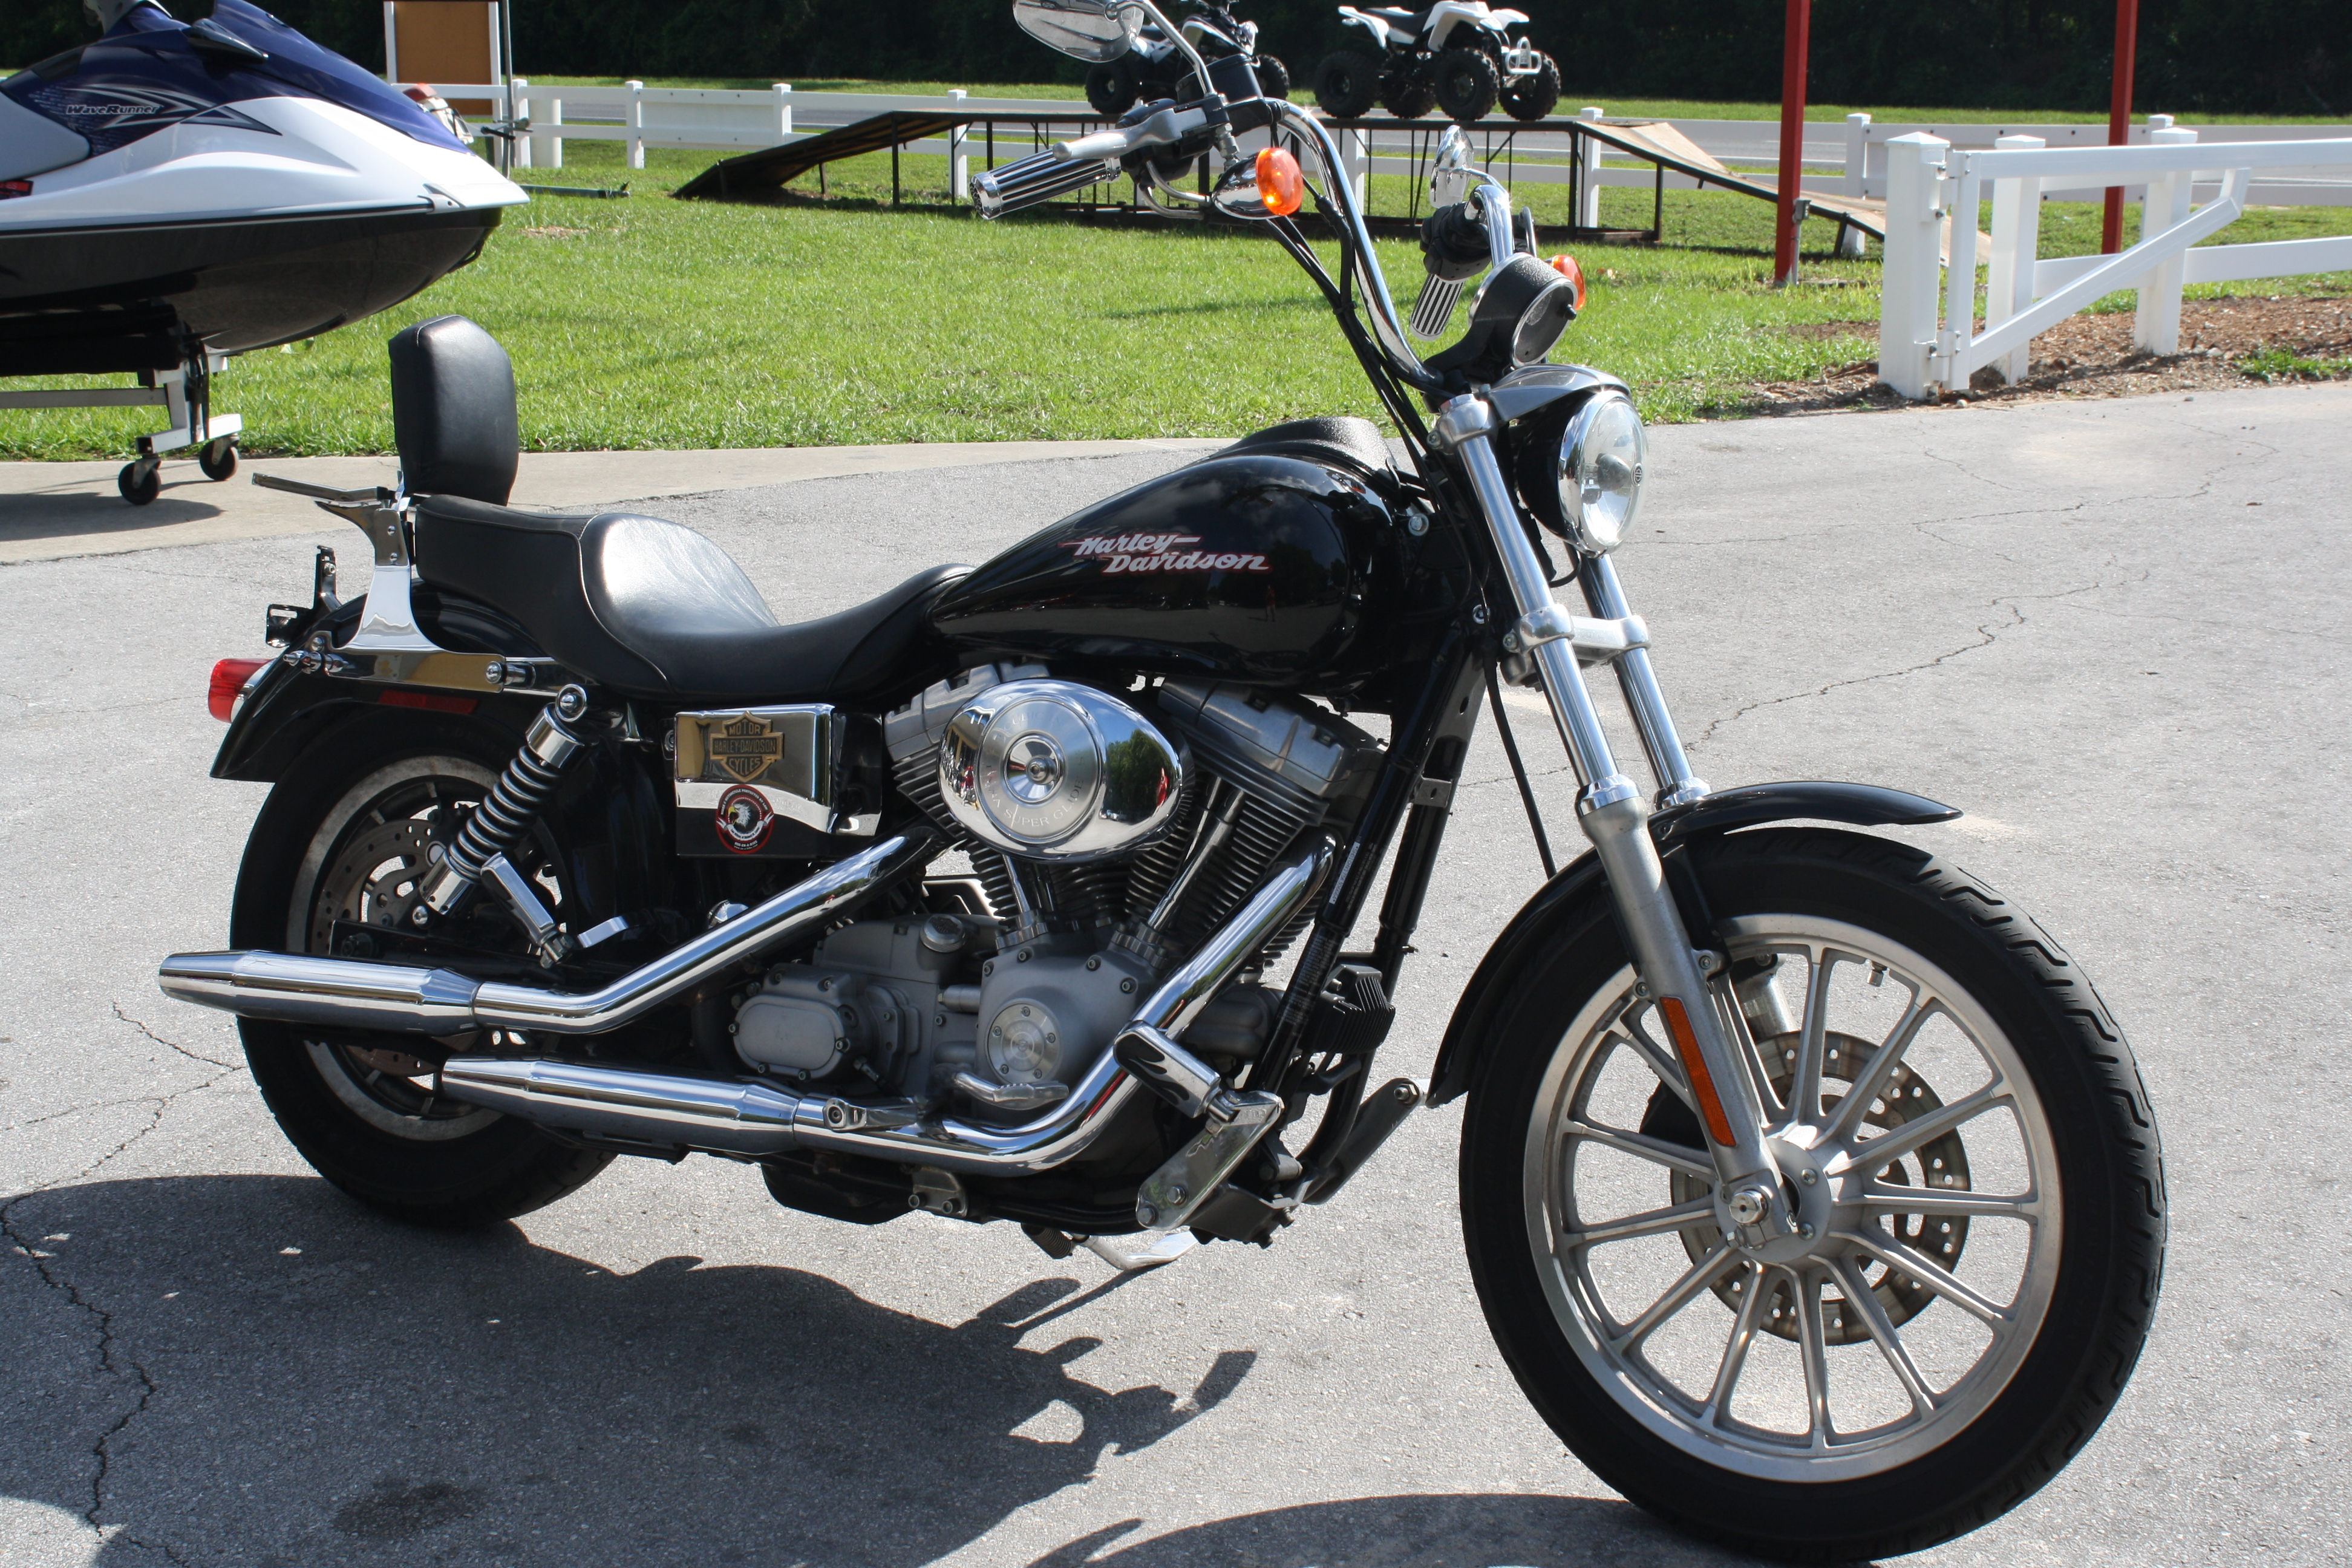 2005 harley davidson fxd dyna super glide pics specs and information. Black Bedroom Furniture Sets. Home Design Ideas